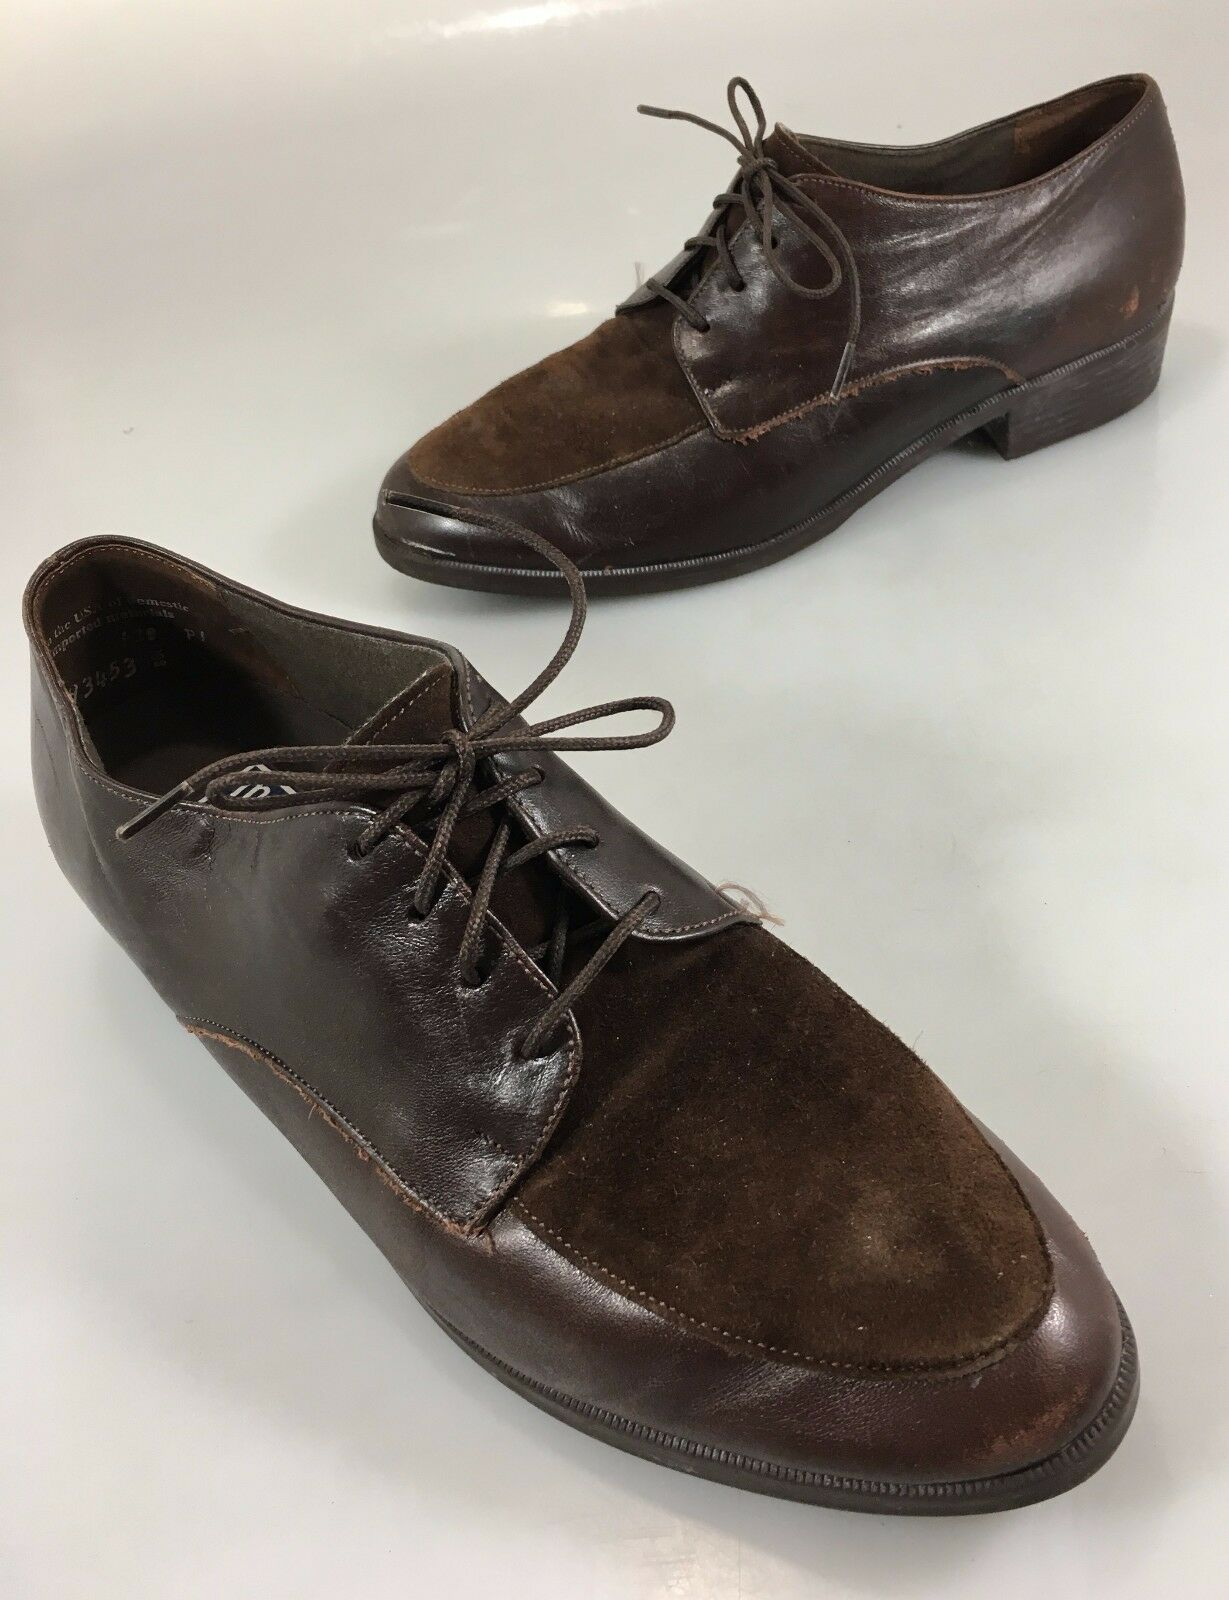 Munro American Sport Womens 9 M Brown Suede Leather Oxford Walking shoes